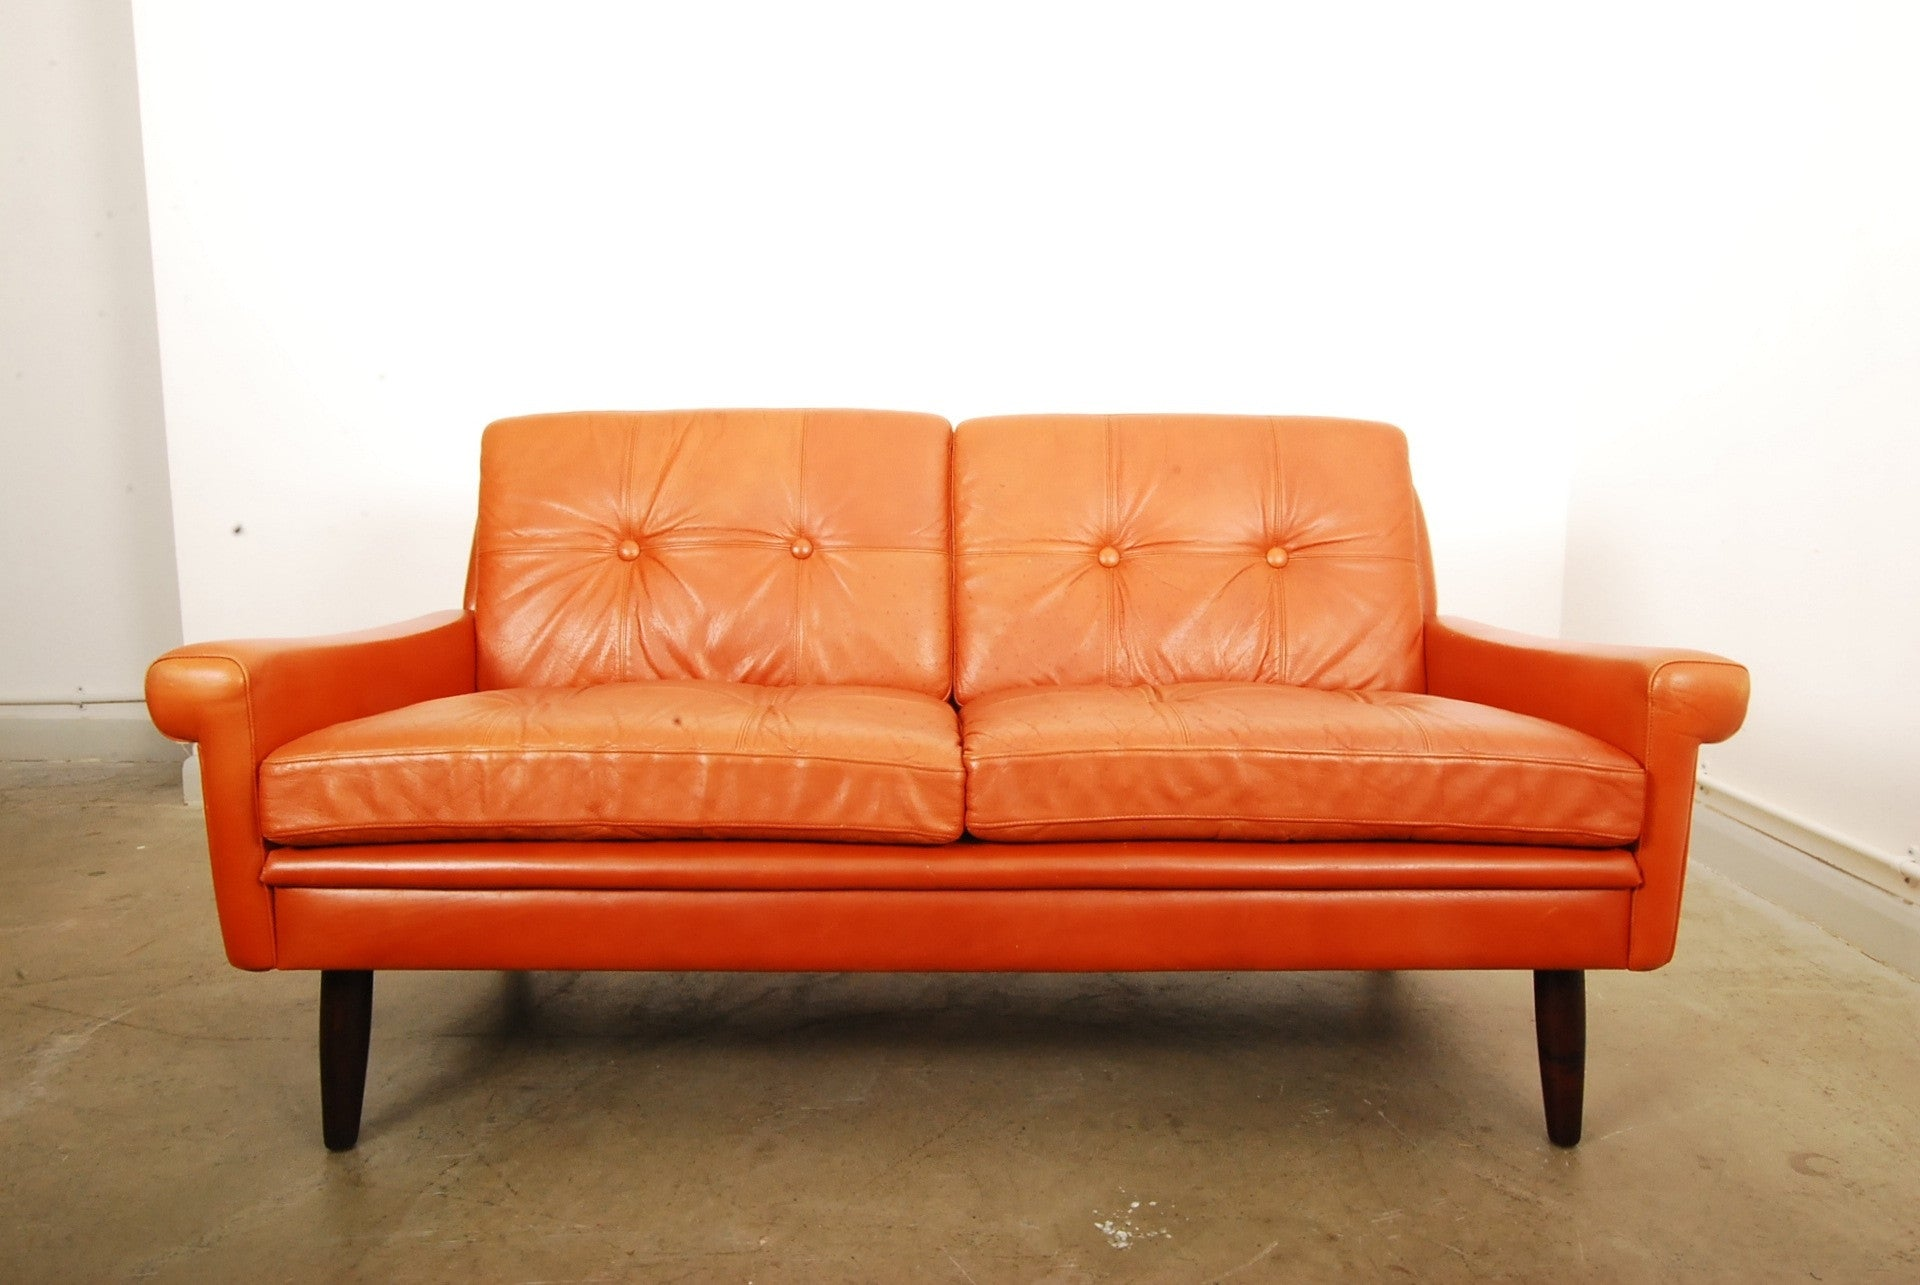 Two seat leather sofa by Skipper